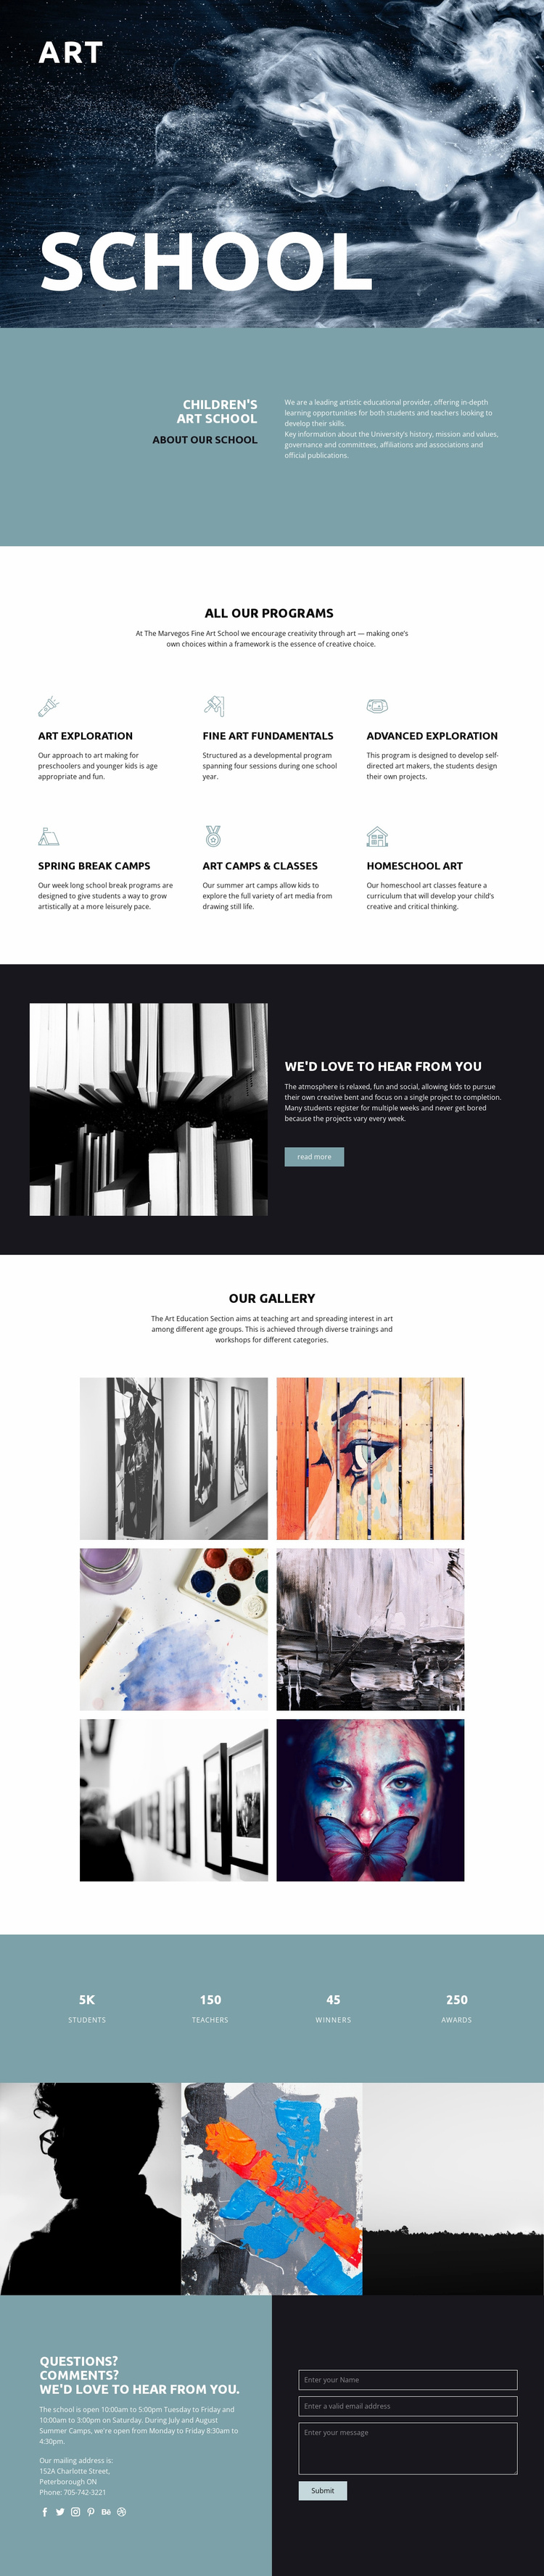 School of artistic education Landing Page